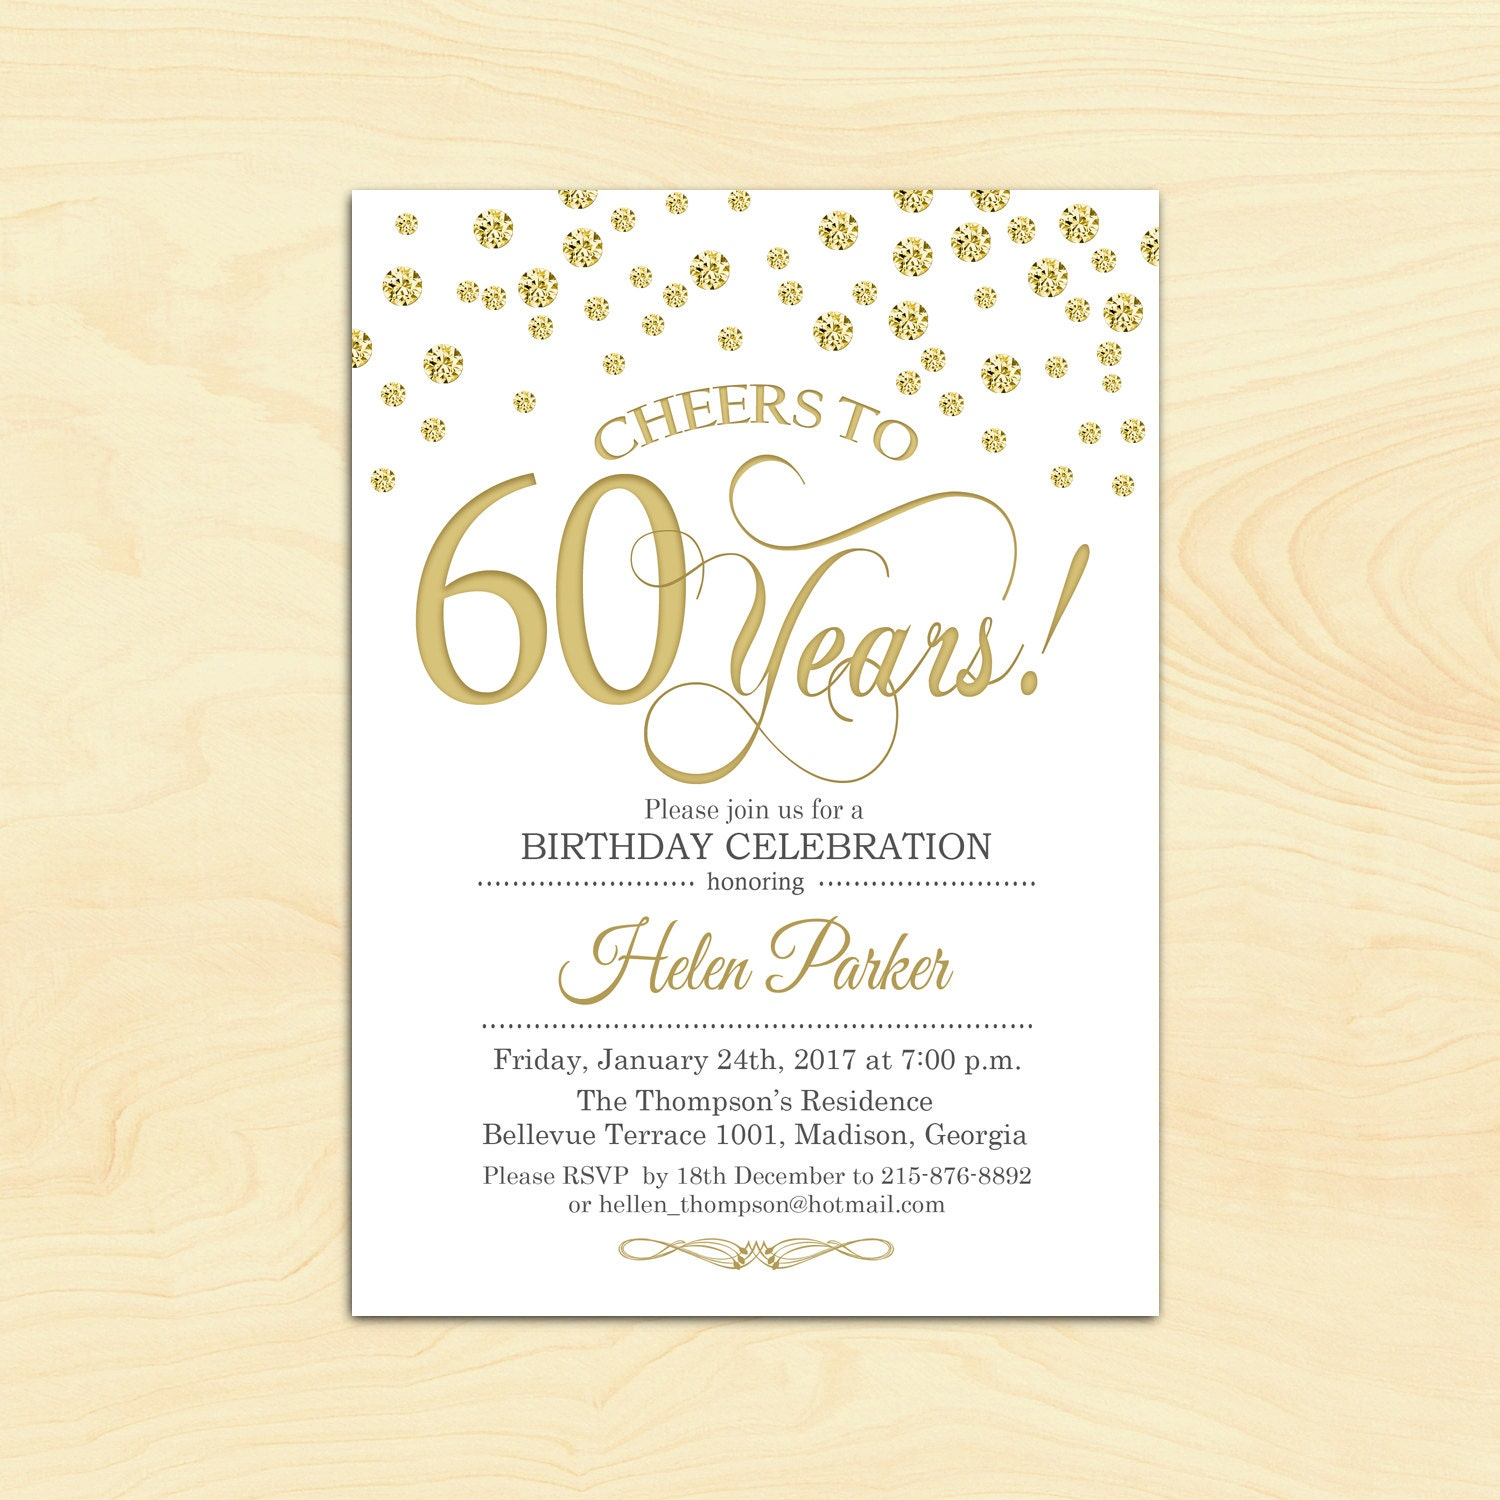 60th birthday invitation any age cheers to 60 years gold. Black Bedroom Furniture Sets. Home Design Ideas